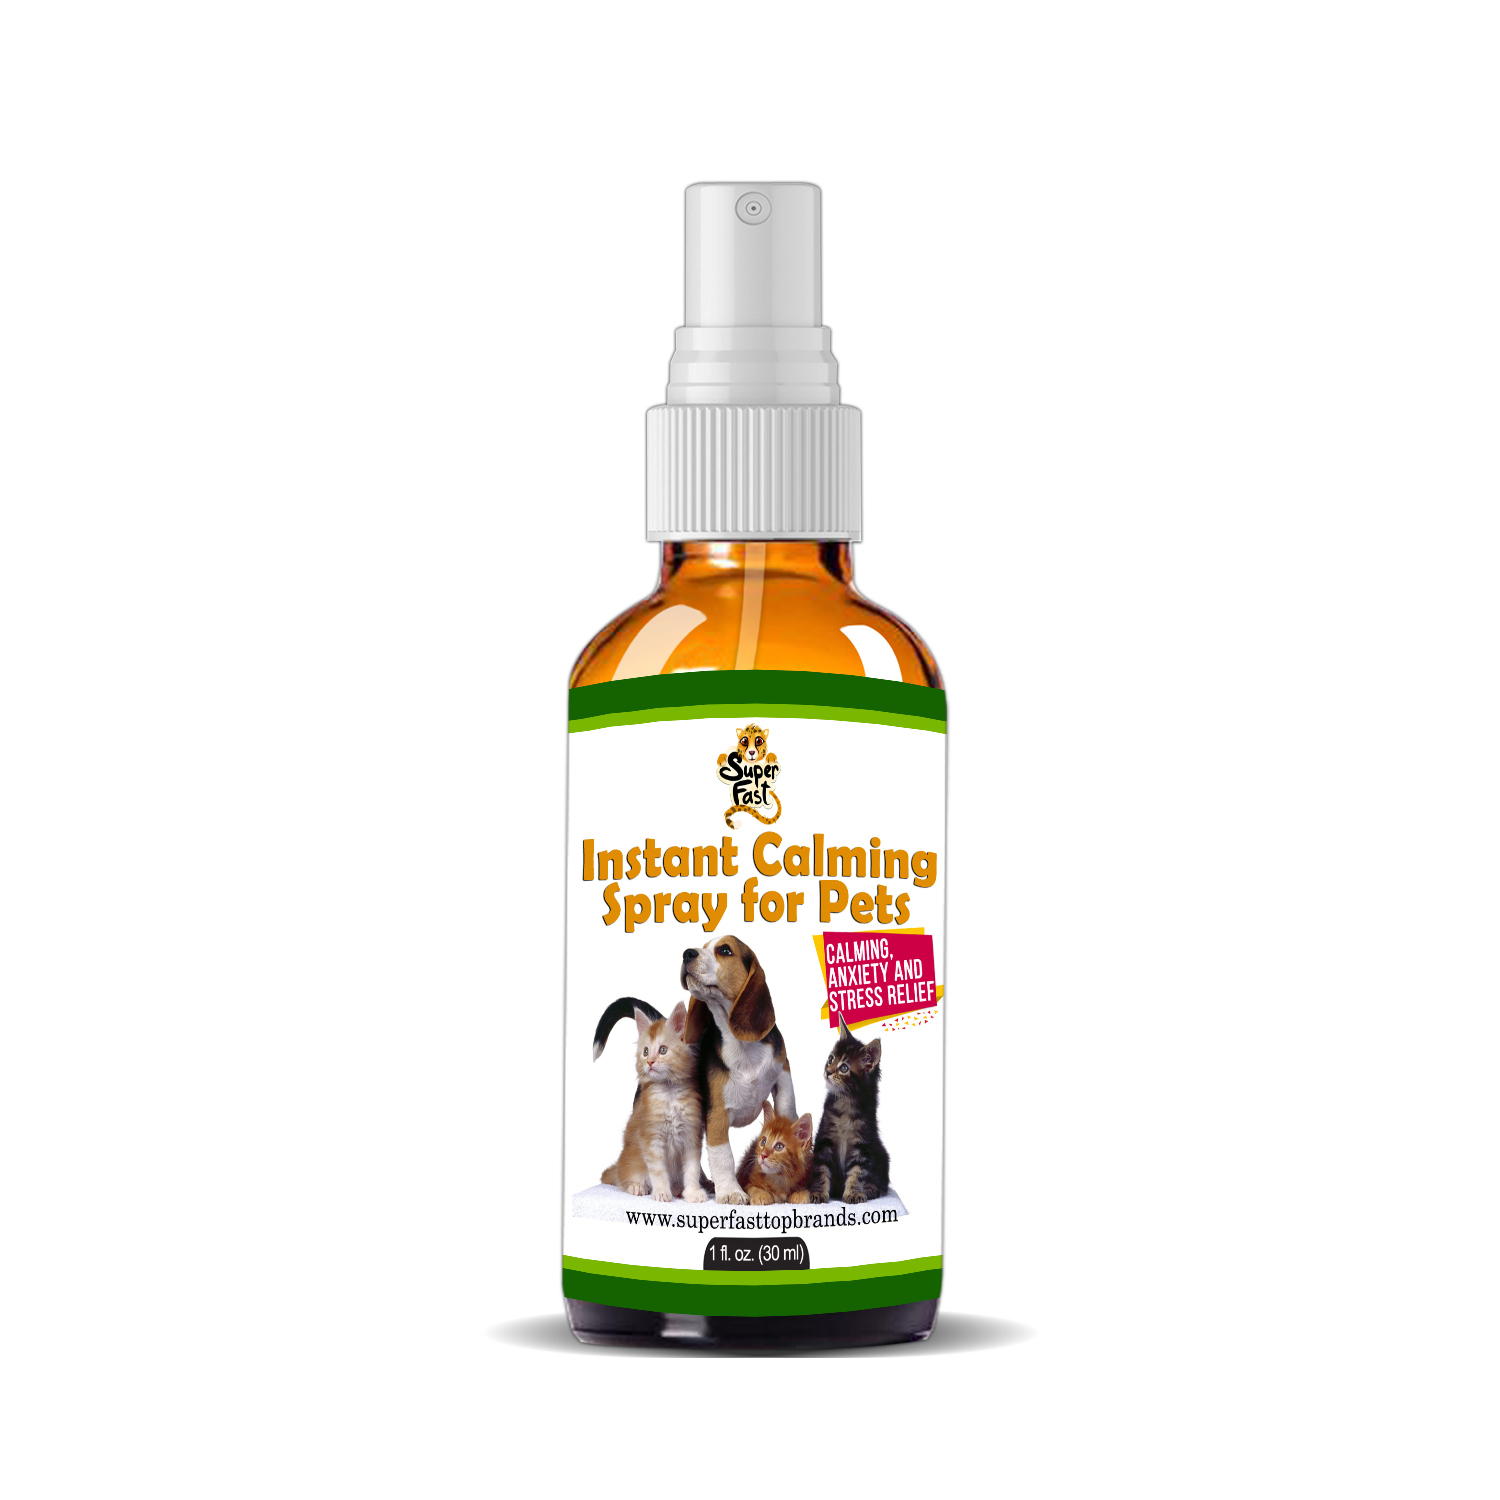 Instant Calming Spray For Pets Helps With Separation Anxiety Fear Of Superfast Top Brands